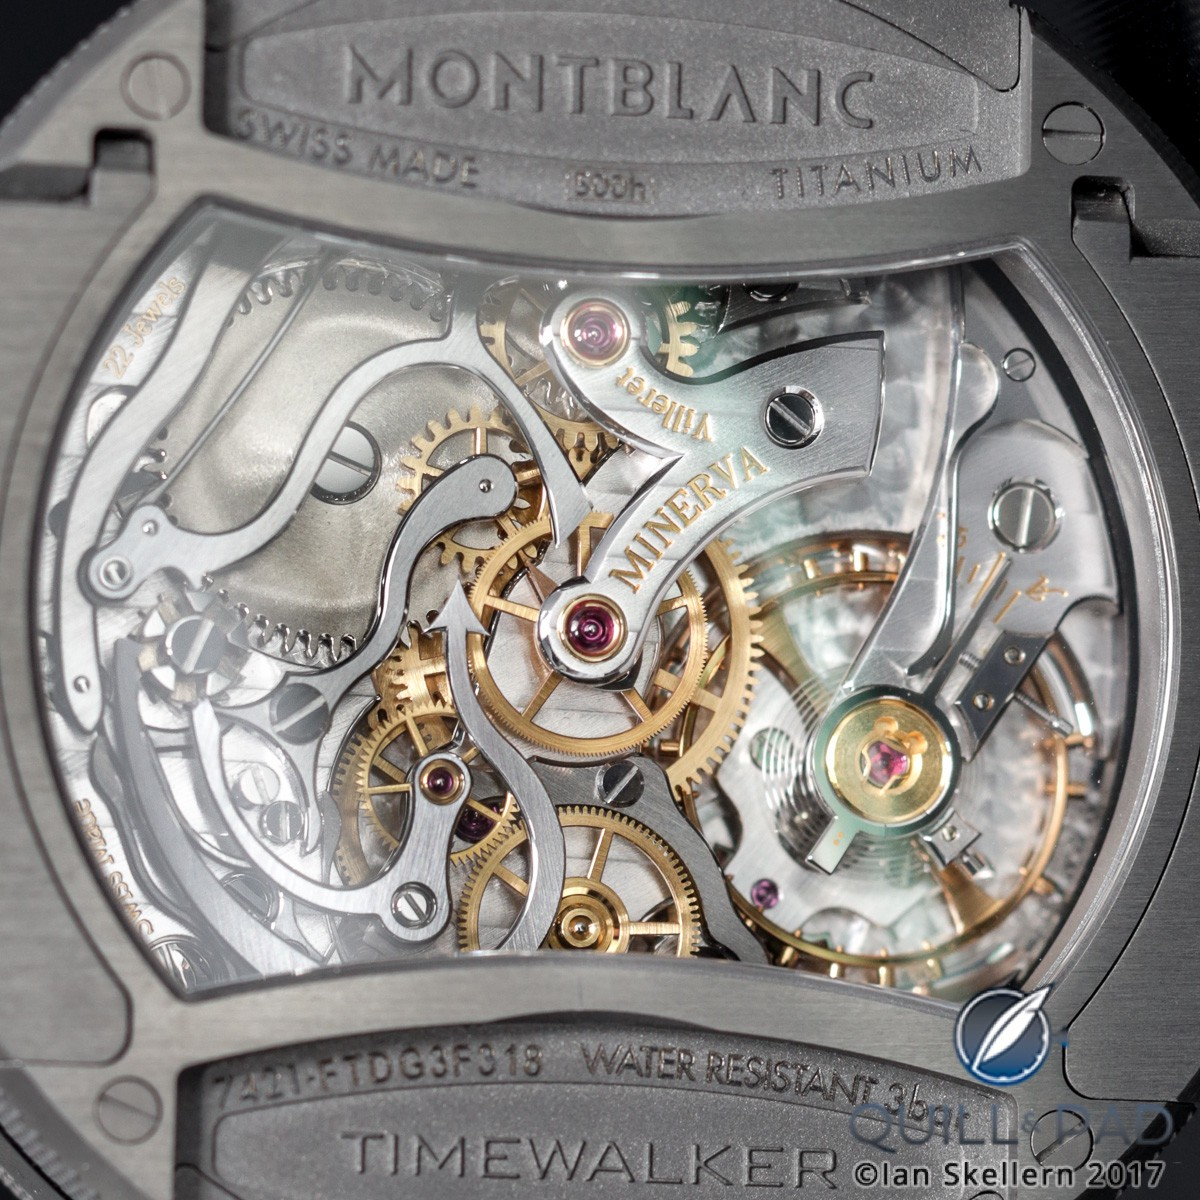 Movement side of the Montblanc Timewalker Chronograph Rally Timer Counter Limited Edition 100